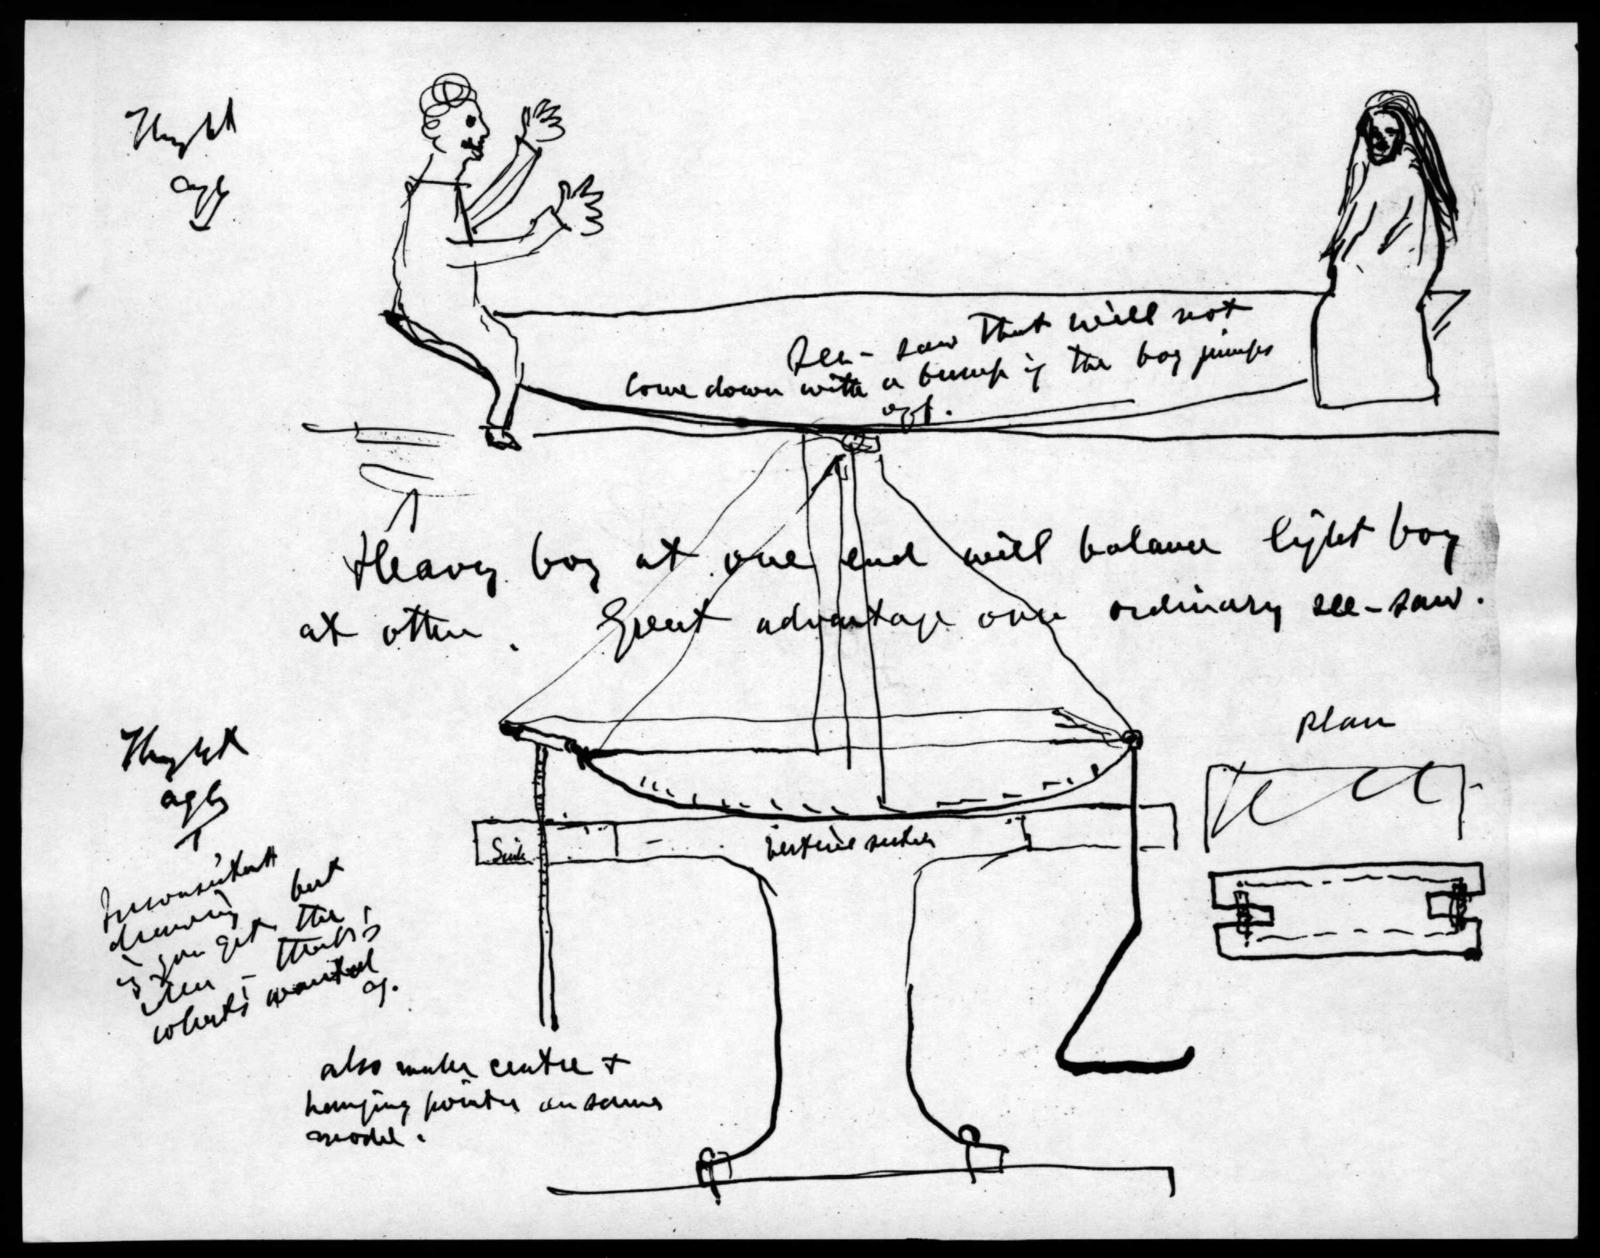 Drawings by Alexander Graham Bell?, from December 29, 1891 to